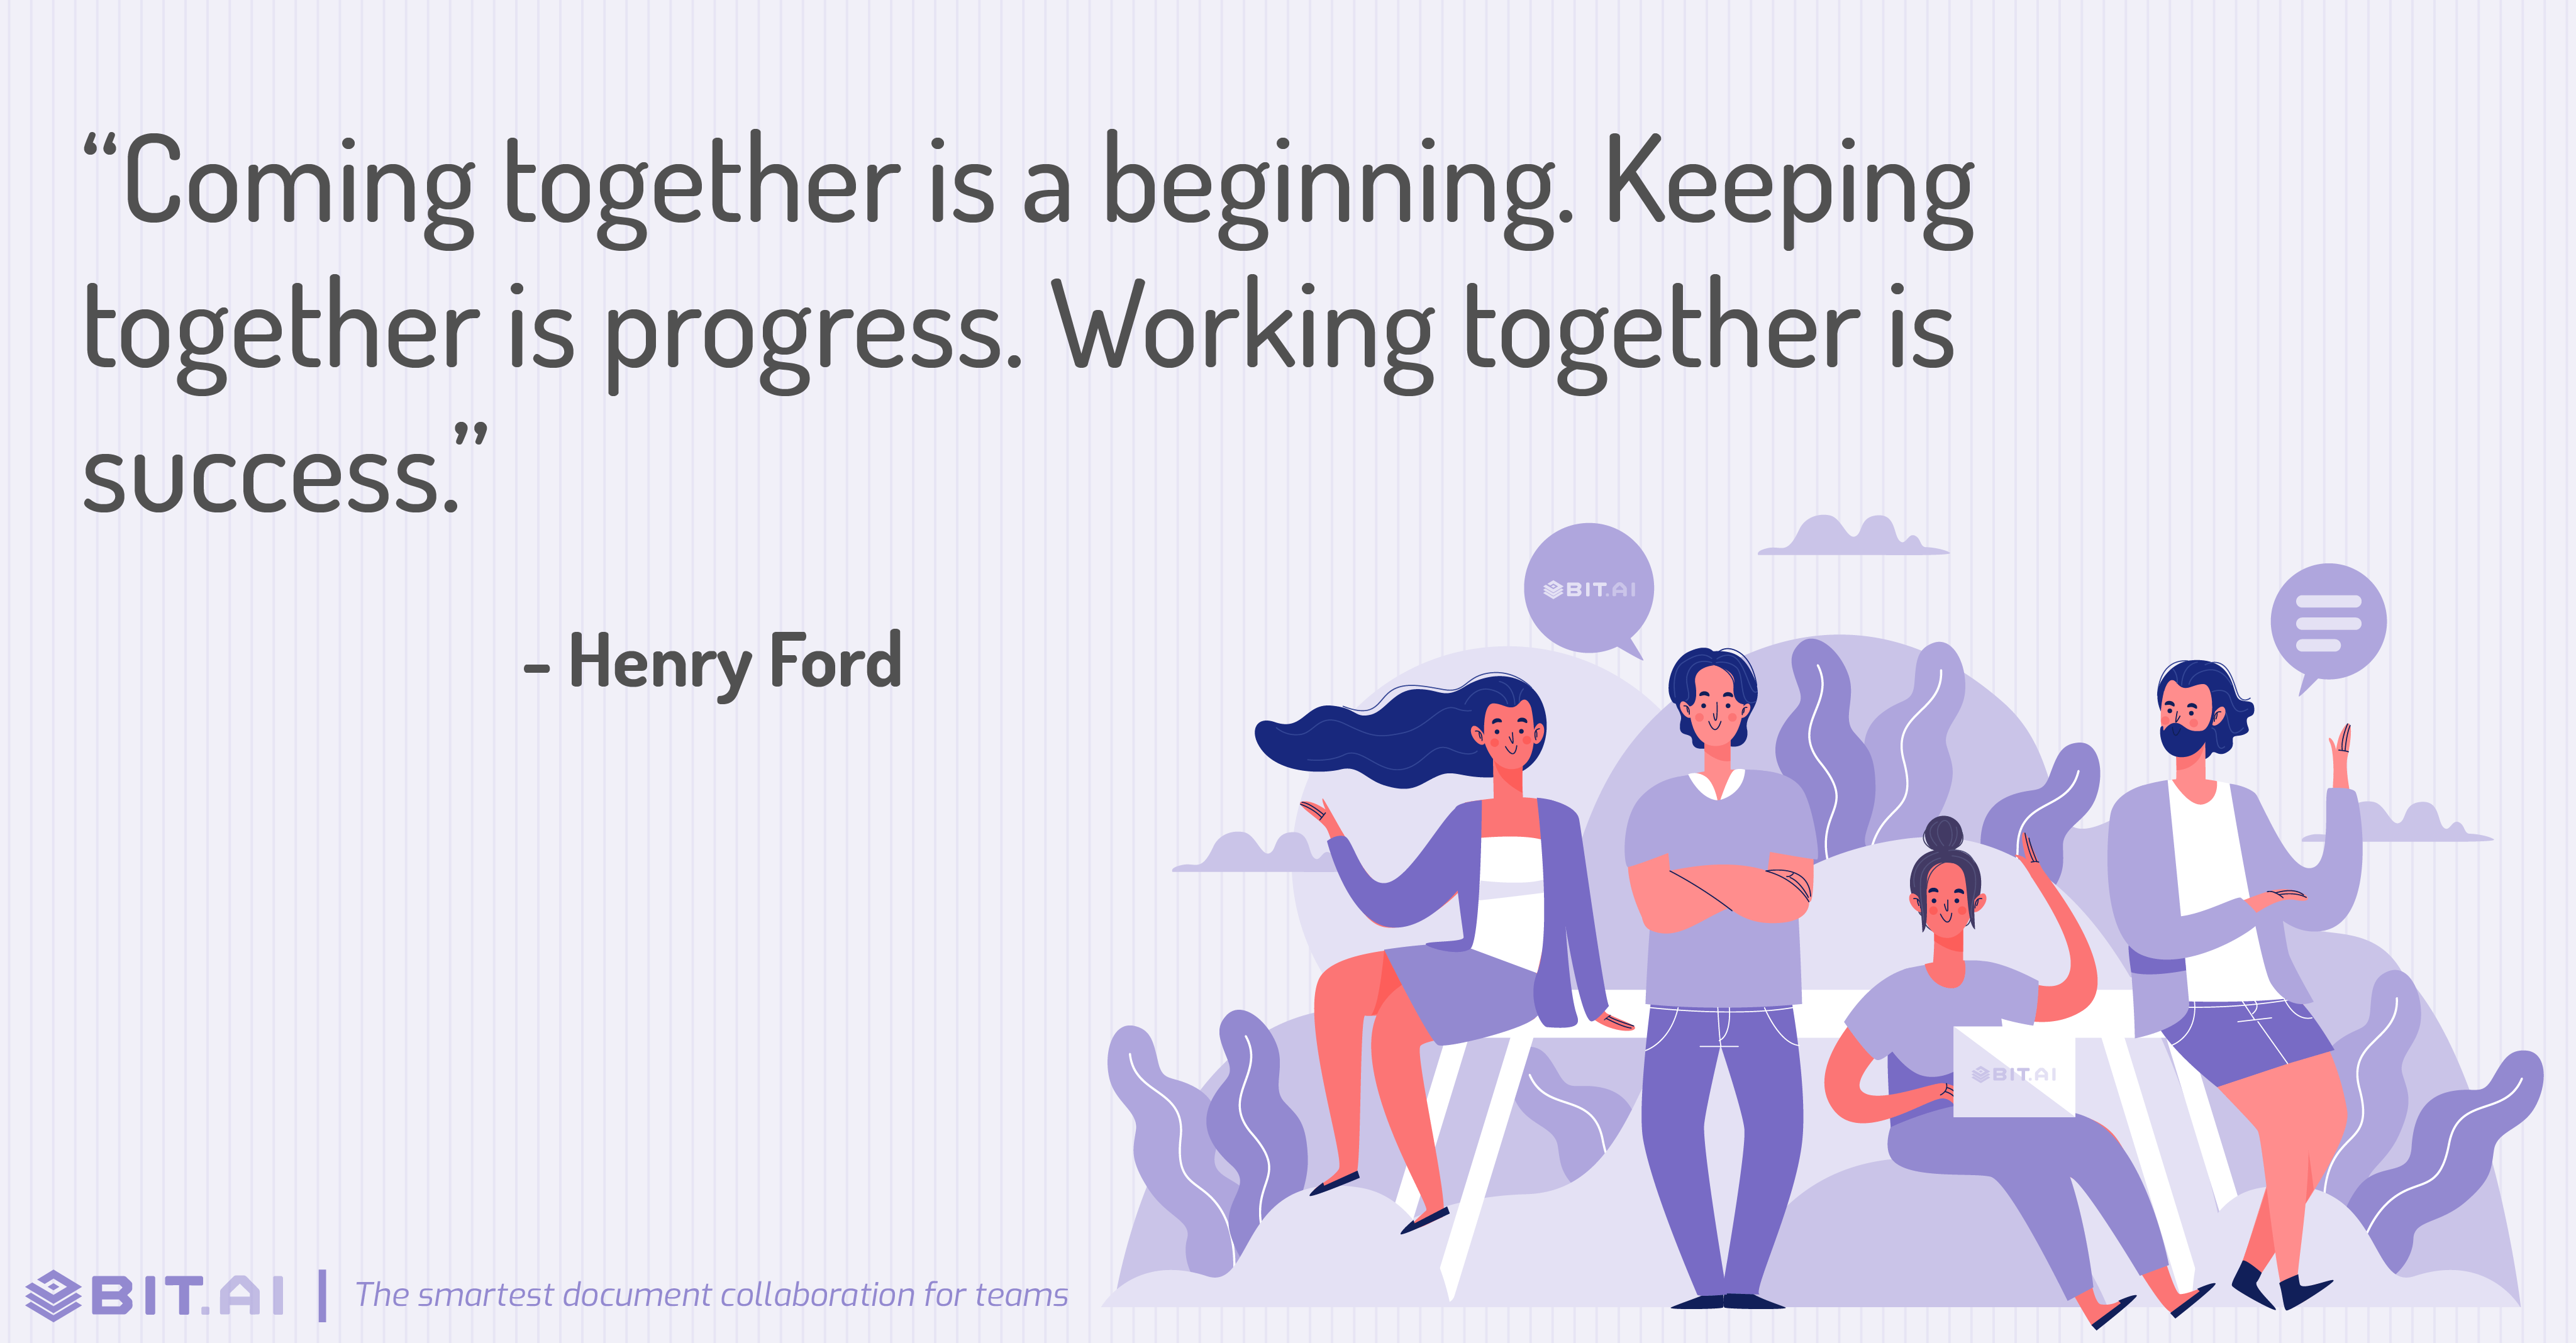 """Coming together is a beginning. Keeping together is progress. Working together is success."" - Henry Ford"